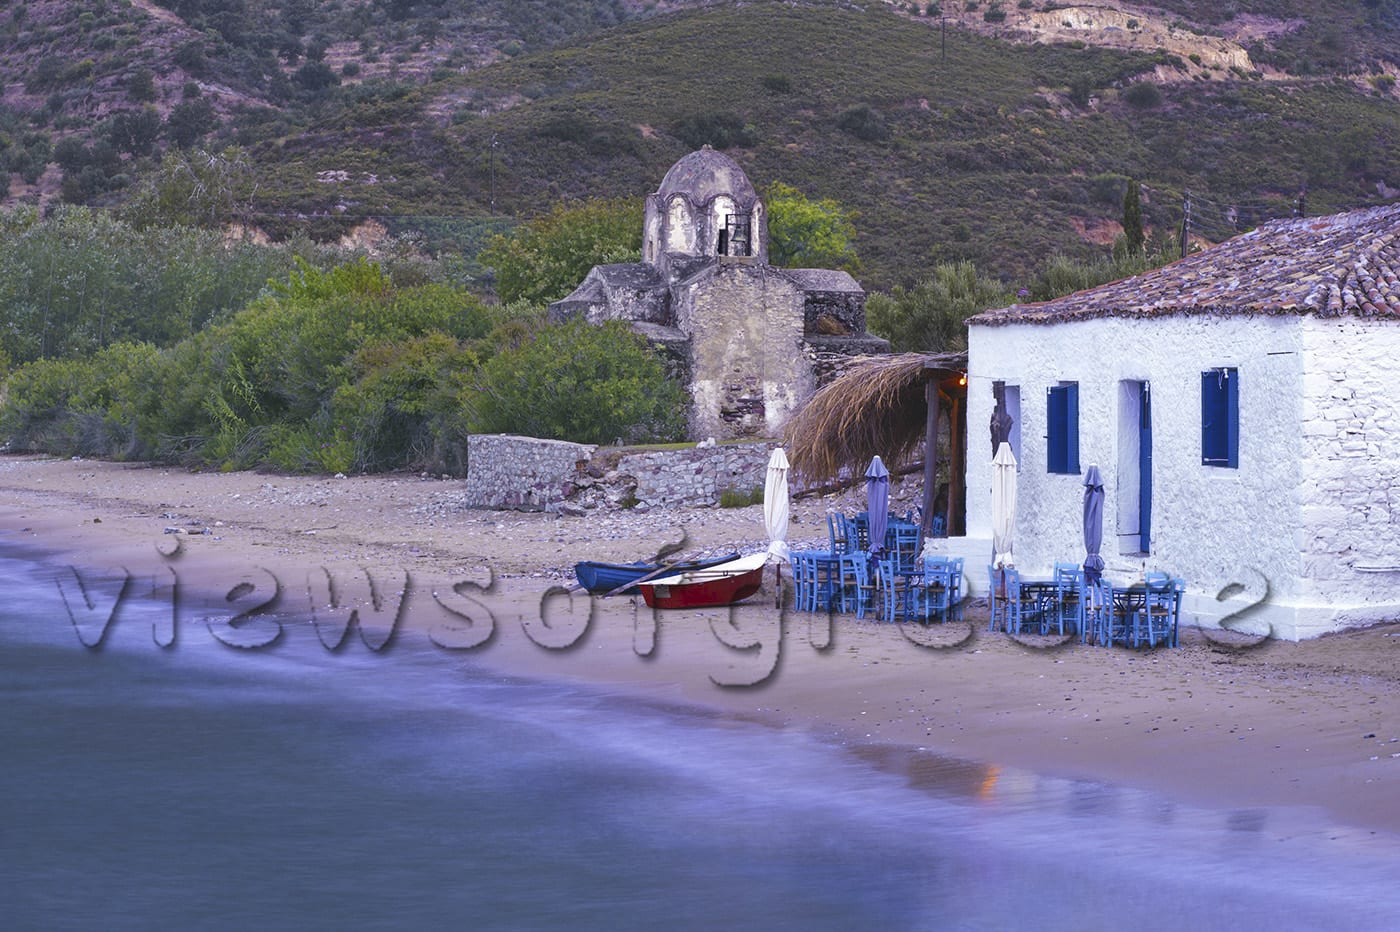 greek, mani, greece, peloponnese, laconia, mediterranean, village, tower, sea, traditional, stone, tourism, architecture, peninsula, vatheia, medieval, taenarus, coastline, ancient, scenic, taenarum,